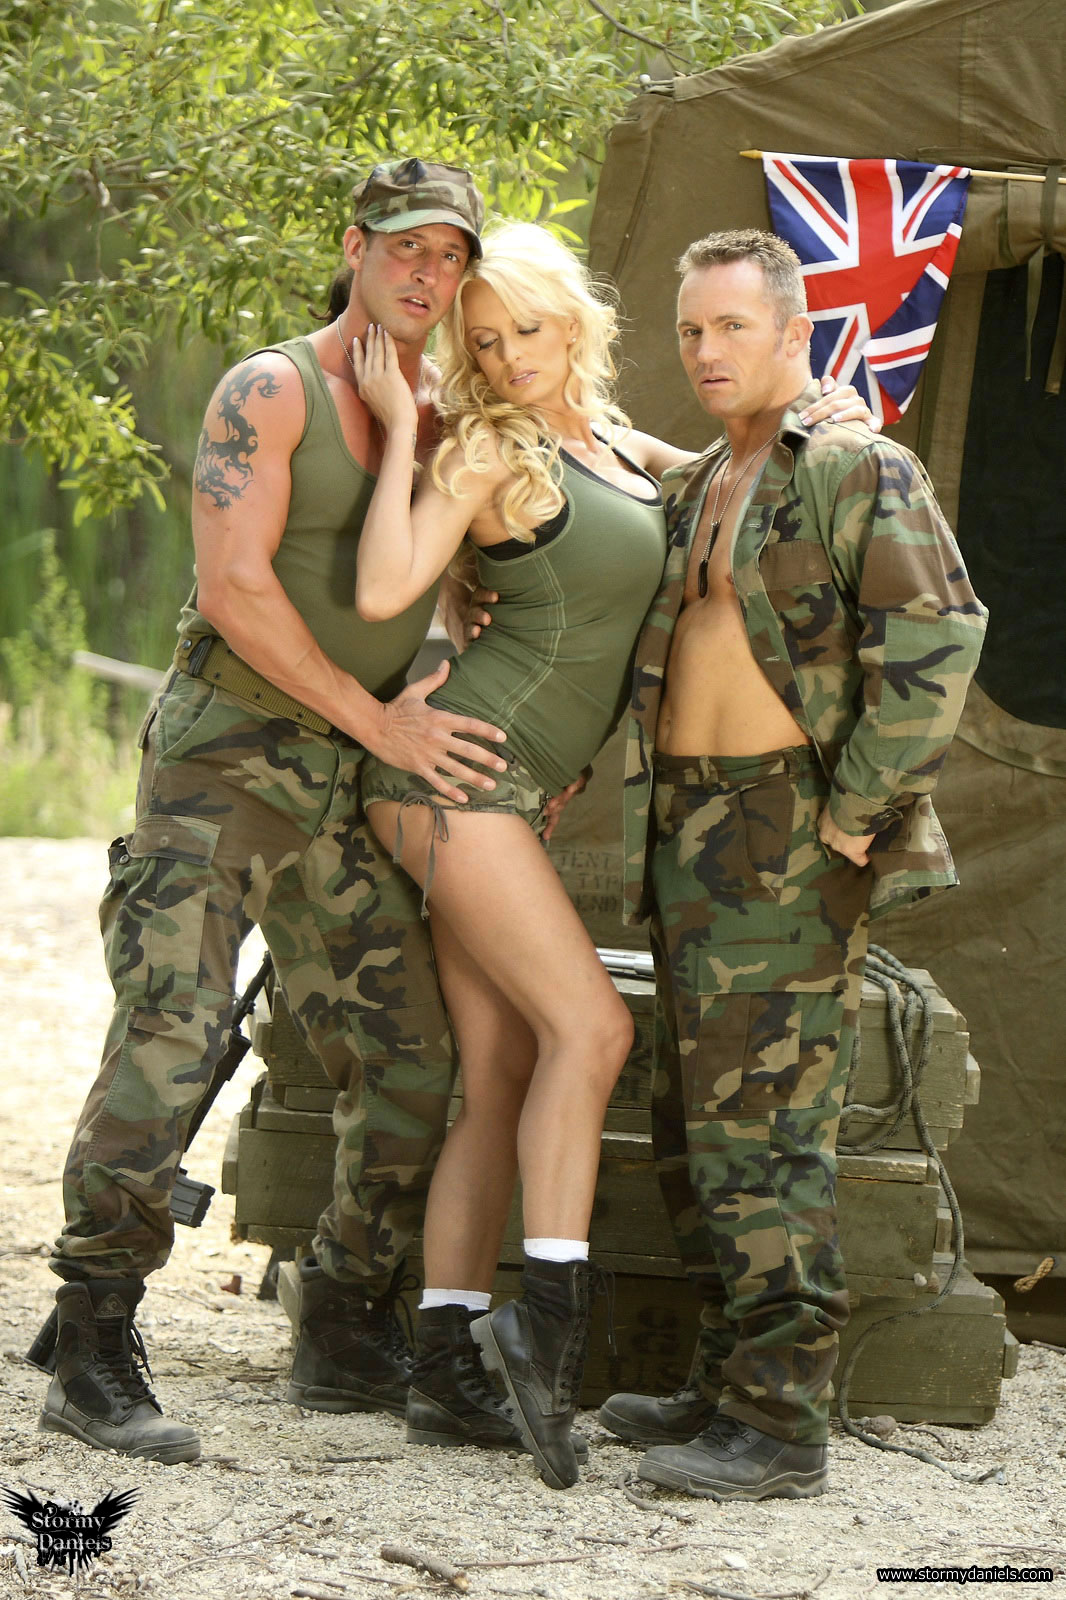 Nude military girl Army Sgt.